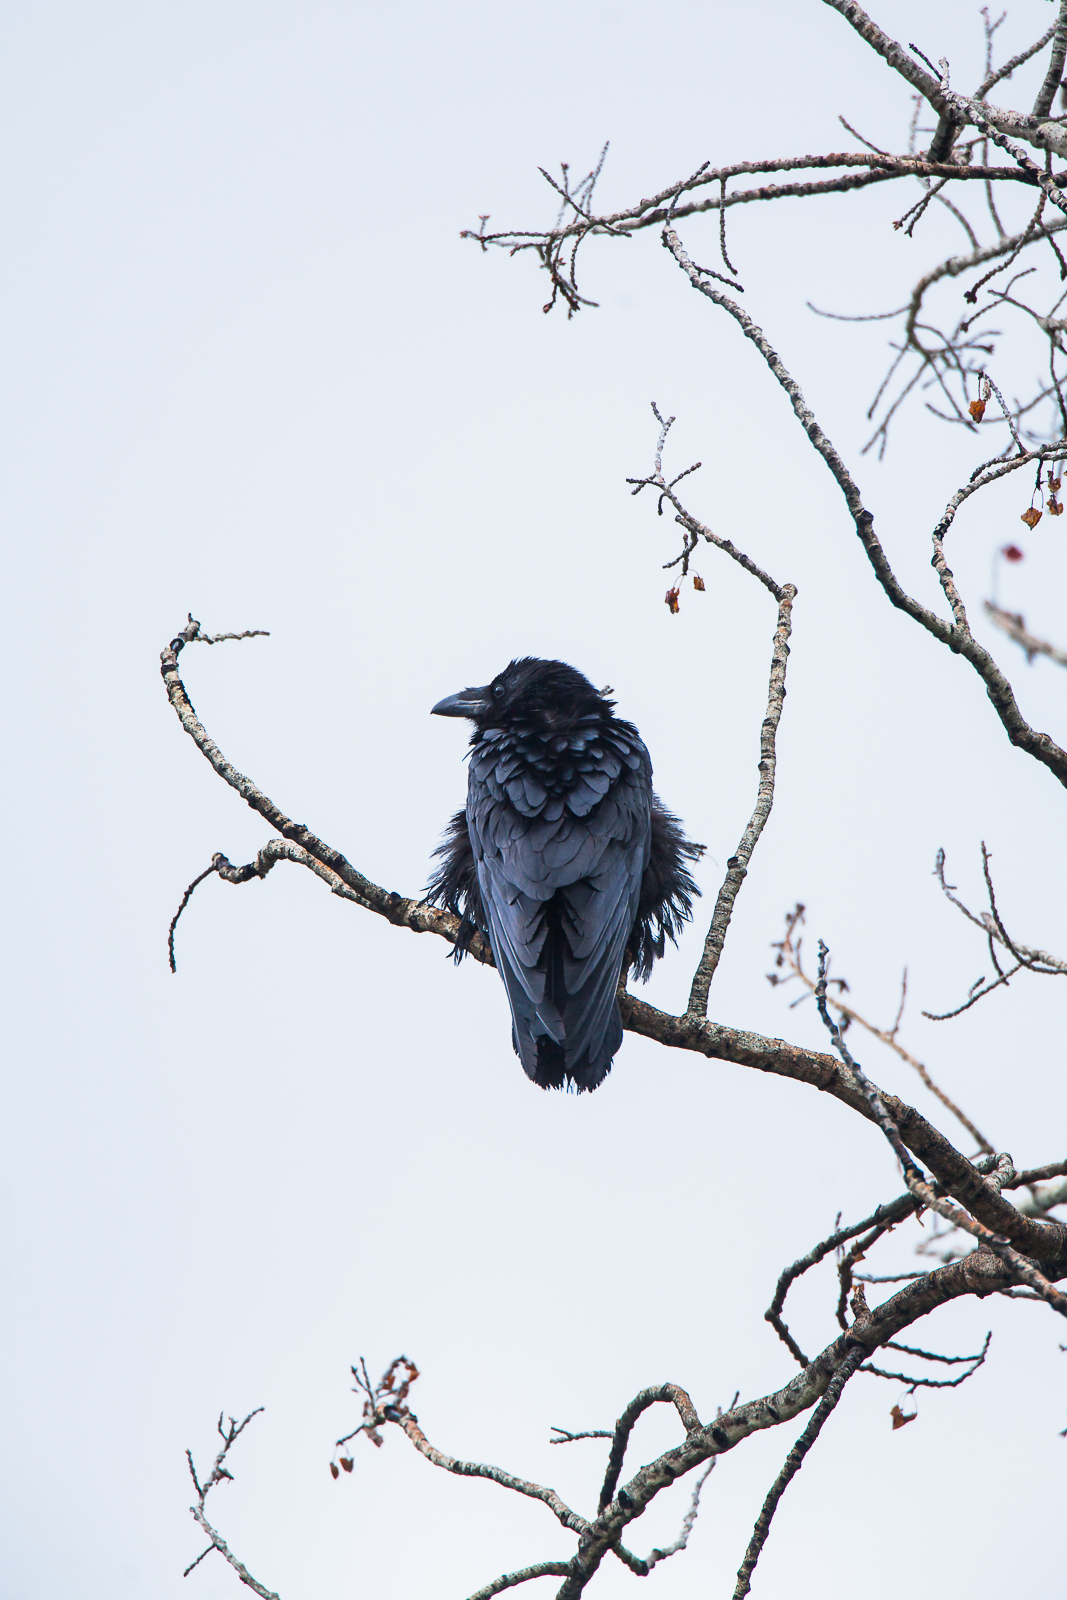 The perfect perch for a Raven scouring sky and land for its next meal. Smarter than your average bird.